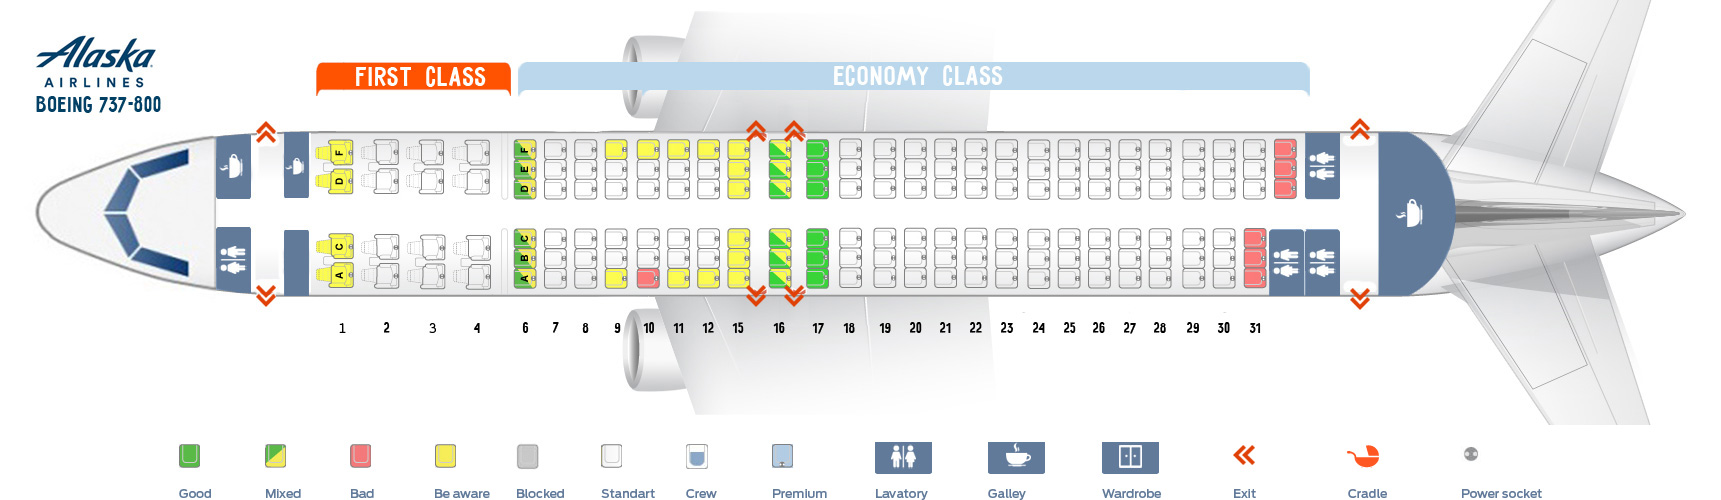 Seat map Boeing 737-800 Alaska Airlines